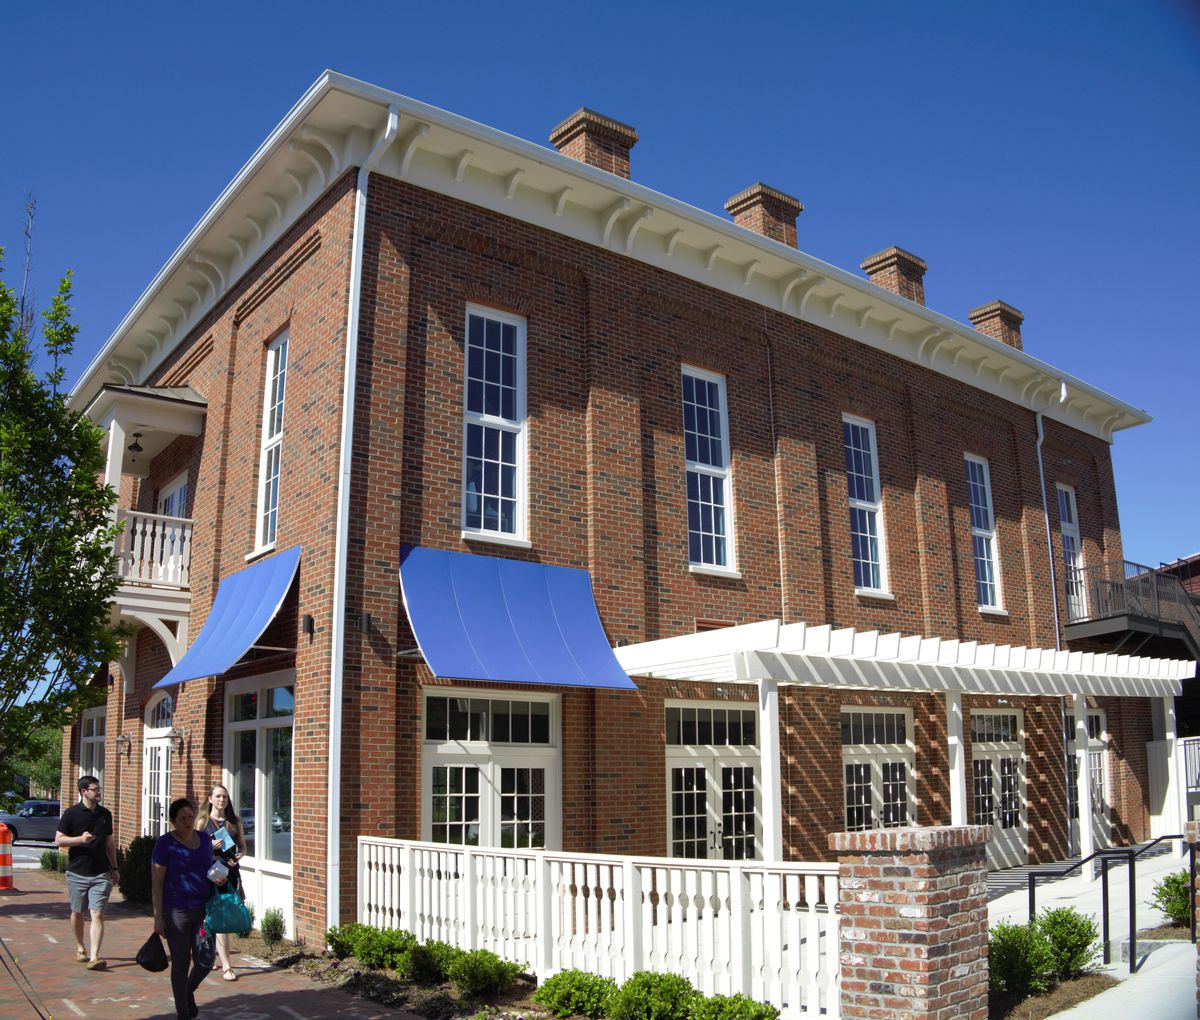 The two-story brick building in which Carson Kitchen resides at Alpharetta City Center